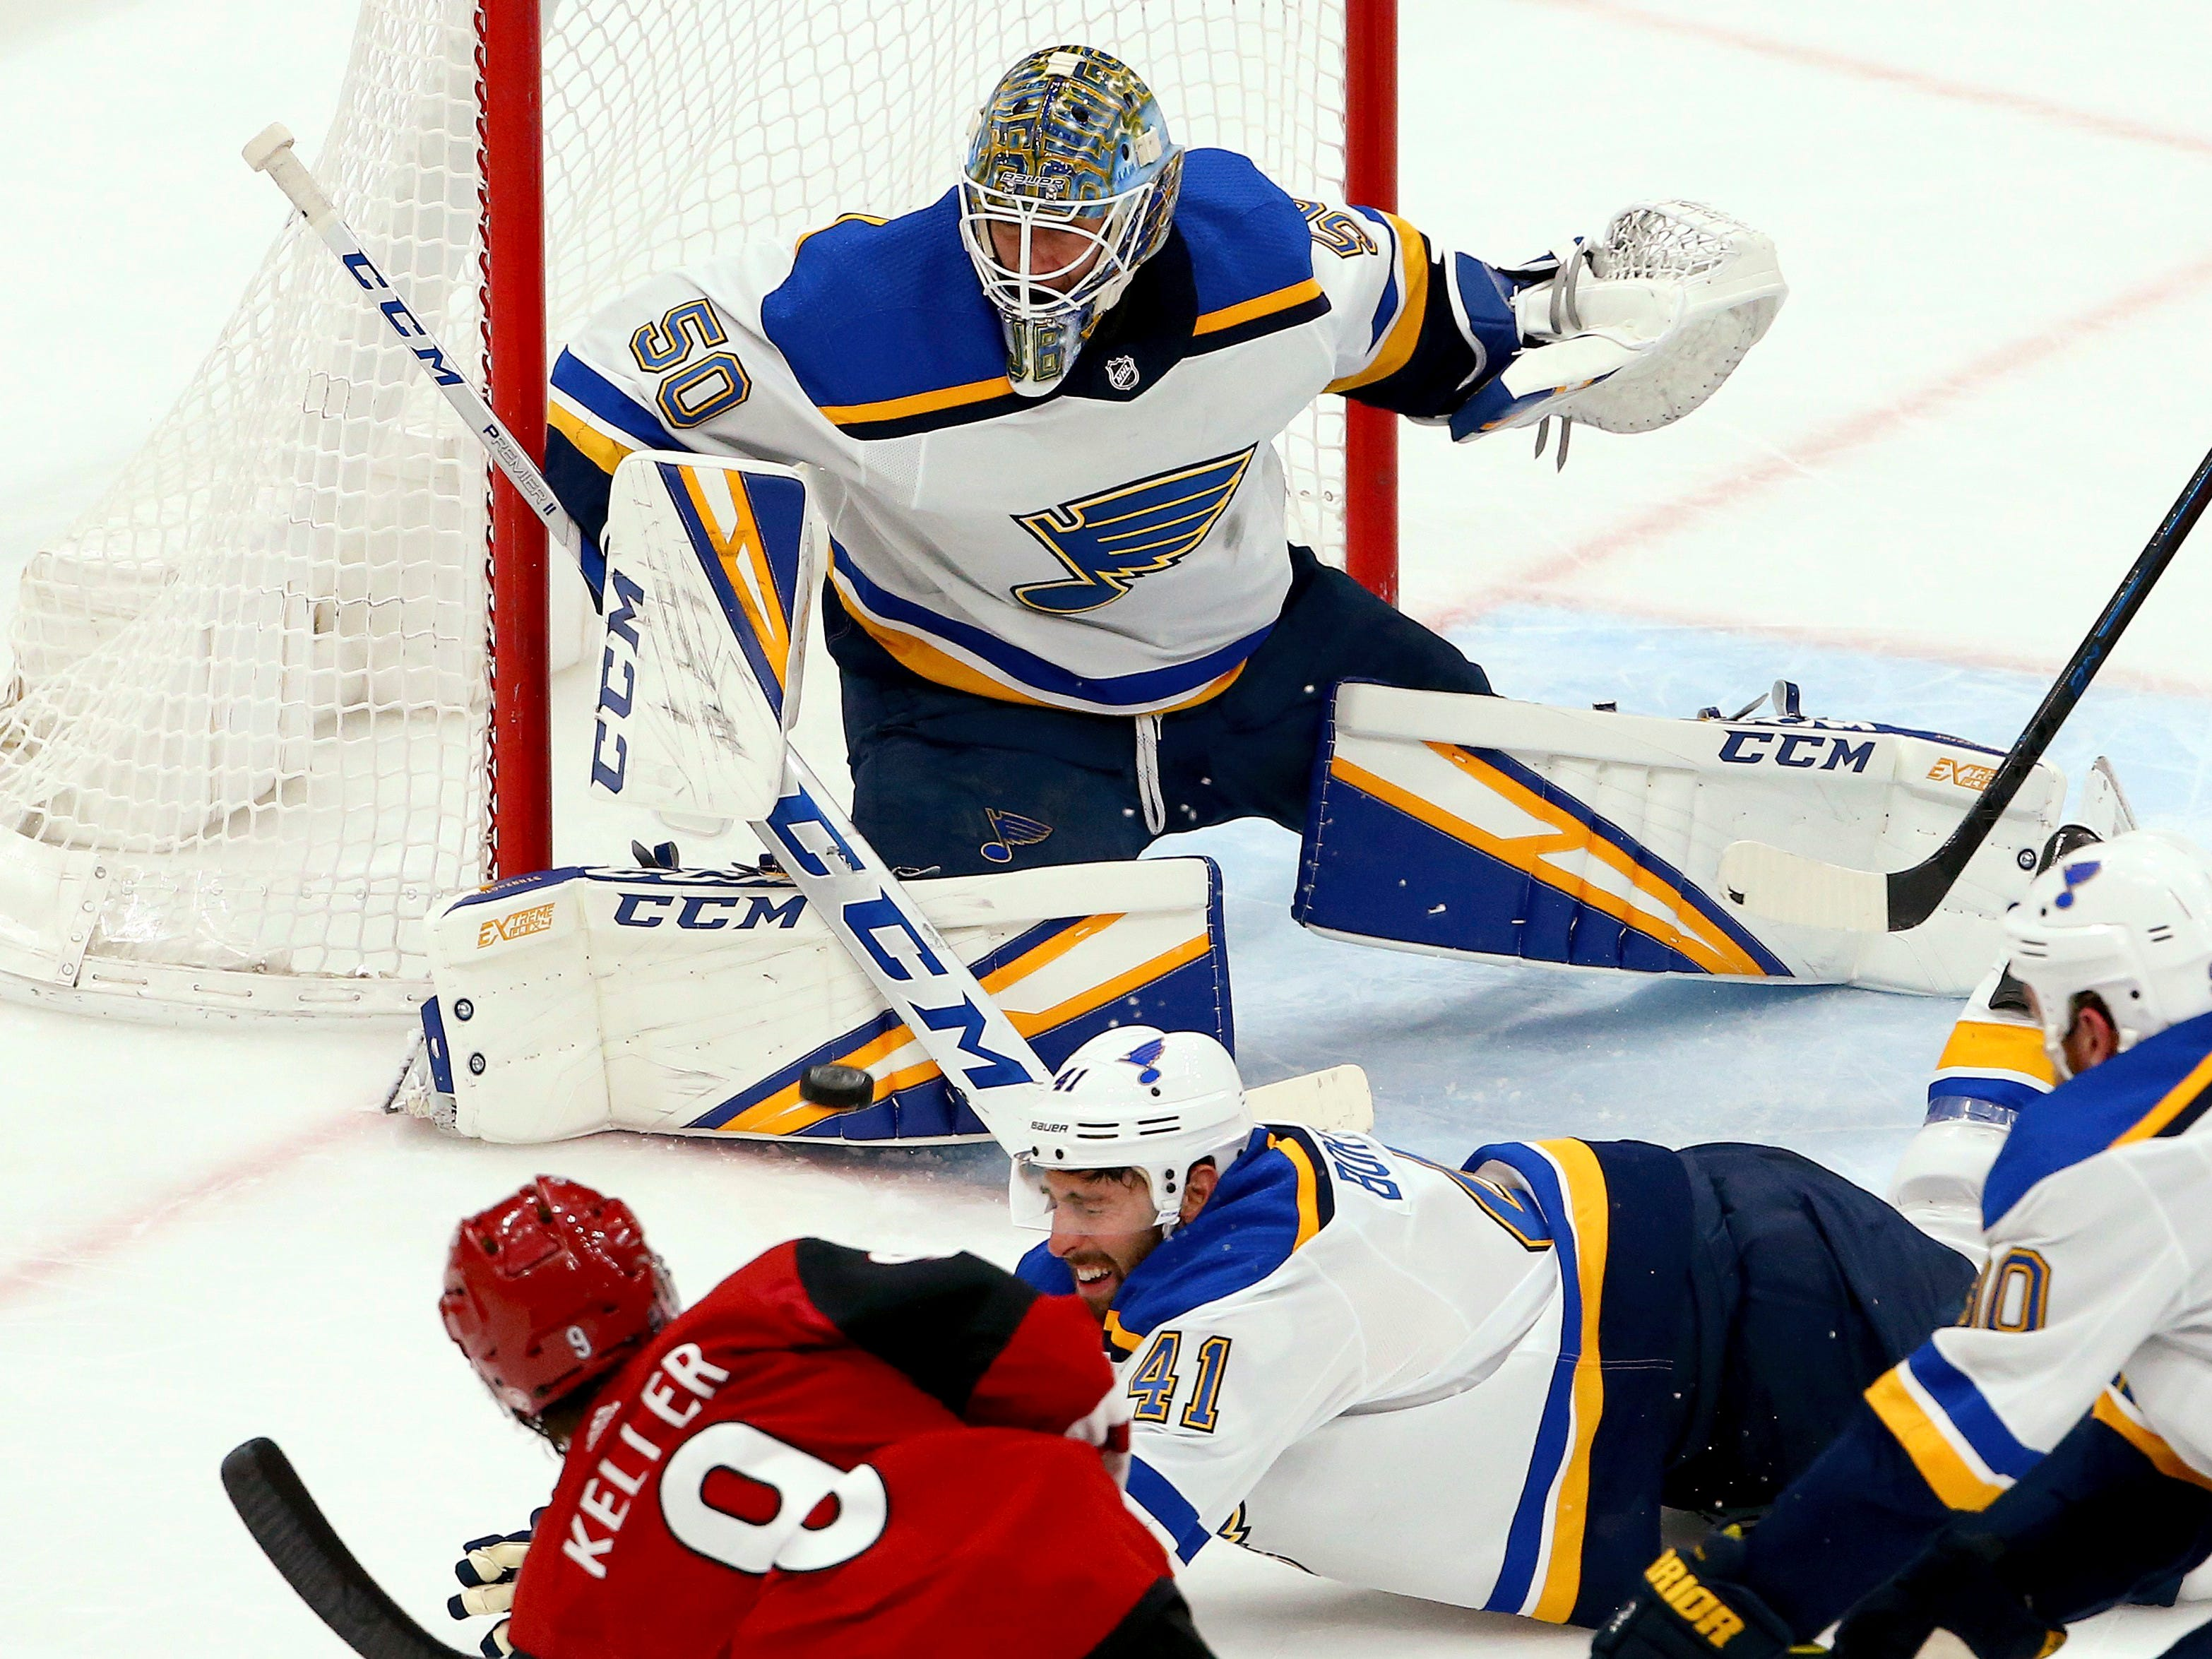 St. Louis Blues goaltender Jordan Binnington (50) makes a save on a shot by Arizona Coyotes center Clayton Keller (9) as Blues defenseman Robert Bortuzzo (41) and center Ryan O'Reilly (90) try to block the shot during the second period of an NHL hockey game Thursday, Feb. 14, 2019, in Glendale, Ariz.